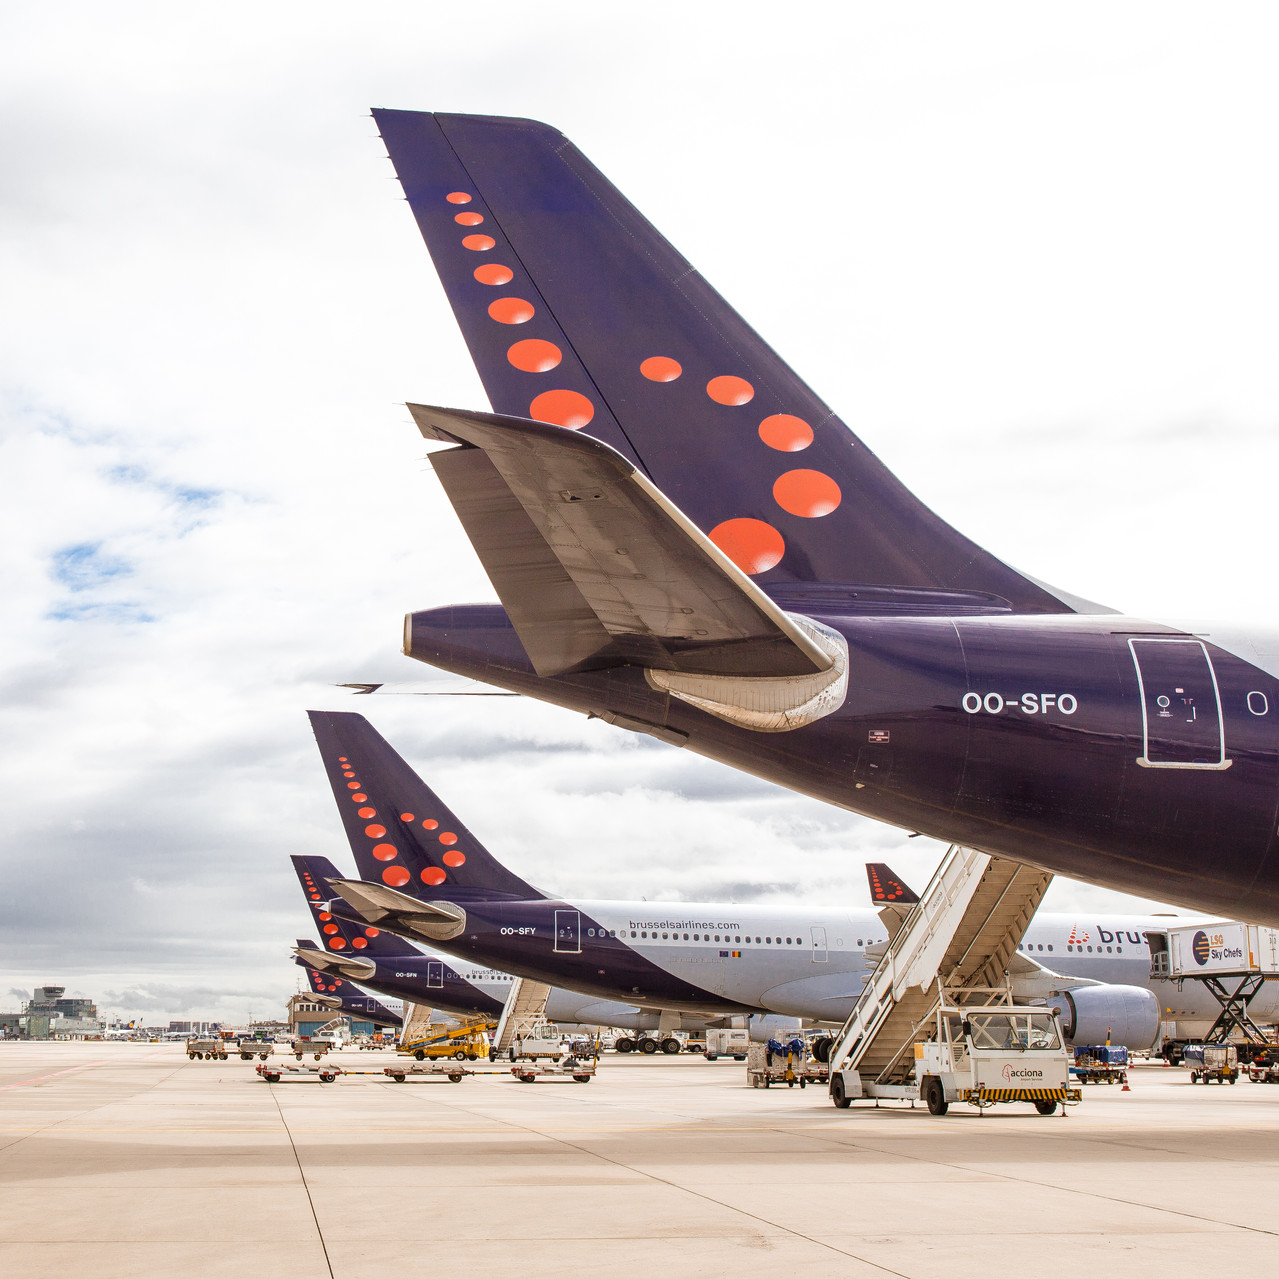 014_Brussels Airlines